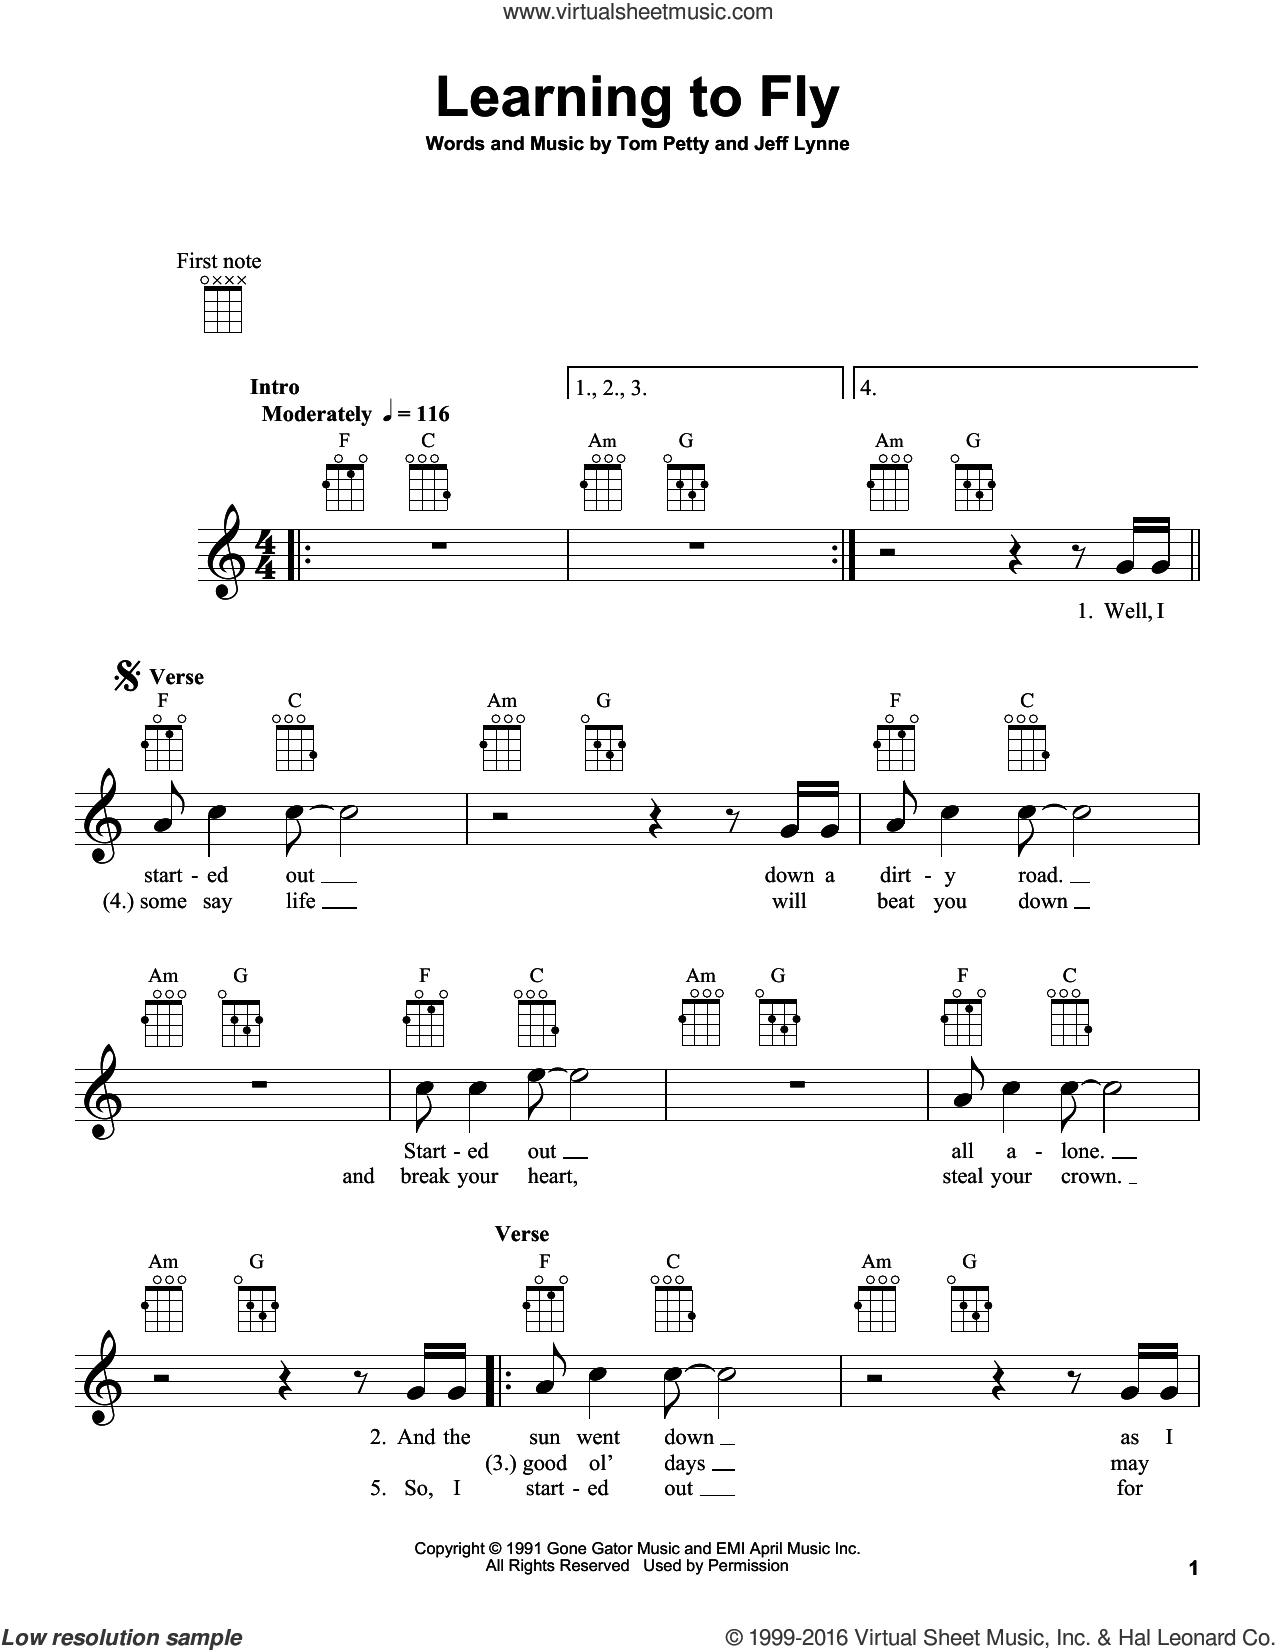 Learning To Fly sheet music for ukulele by Tom Petty and Jeff Lynne, intermediate skill level